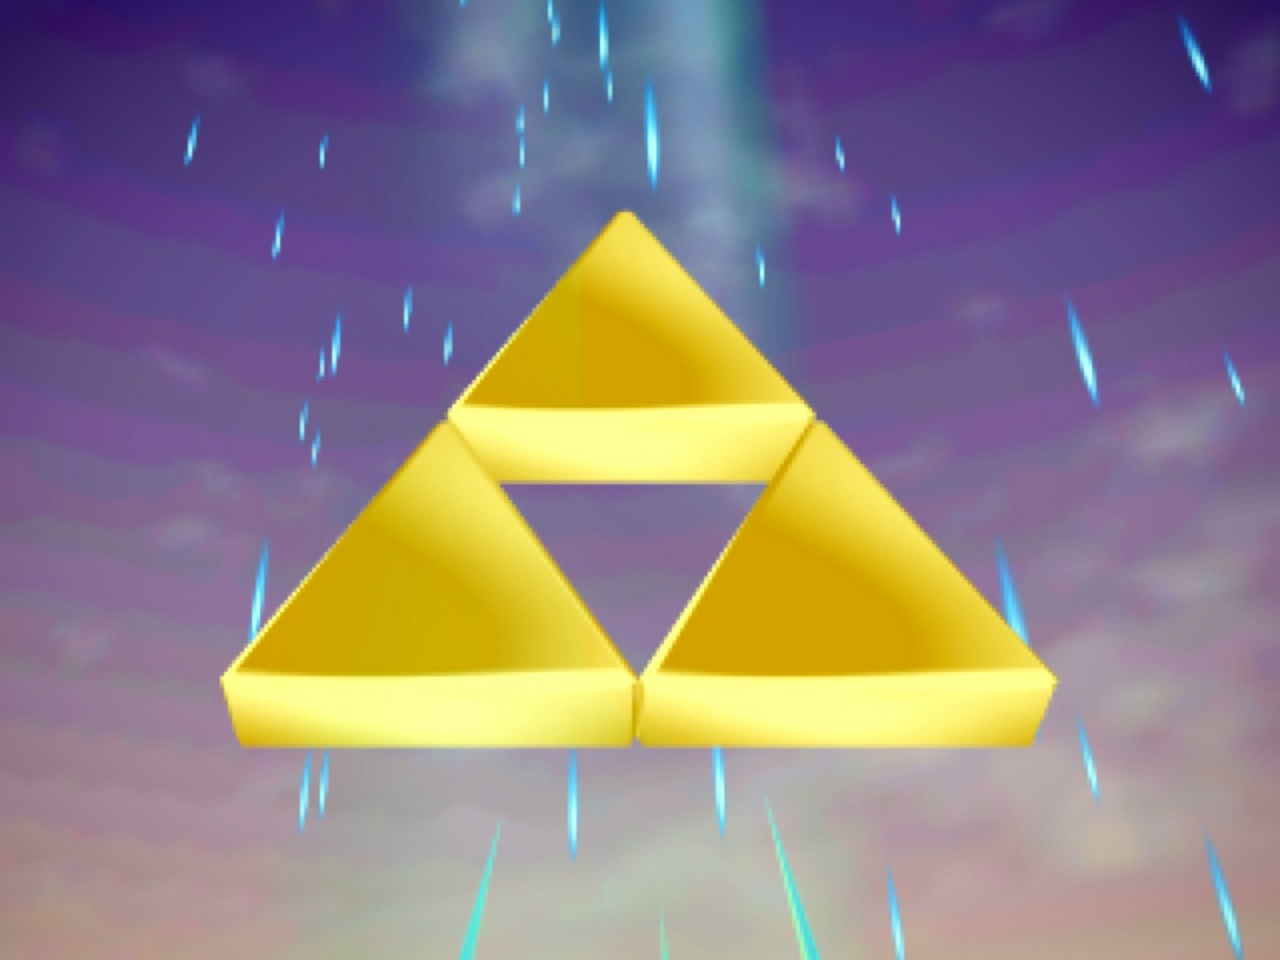 The mighty Triforce represents wisdom, power, and courage.